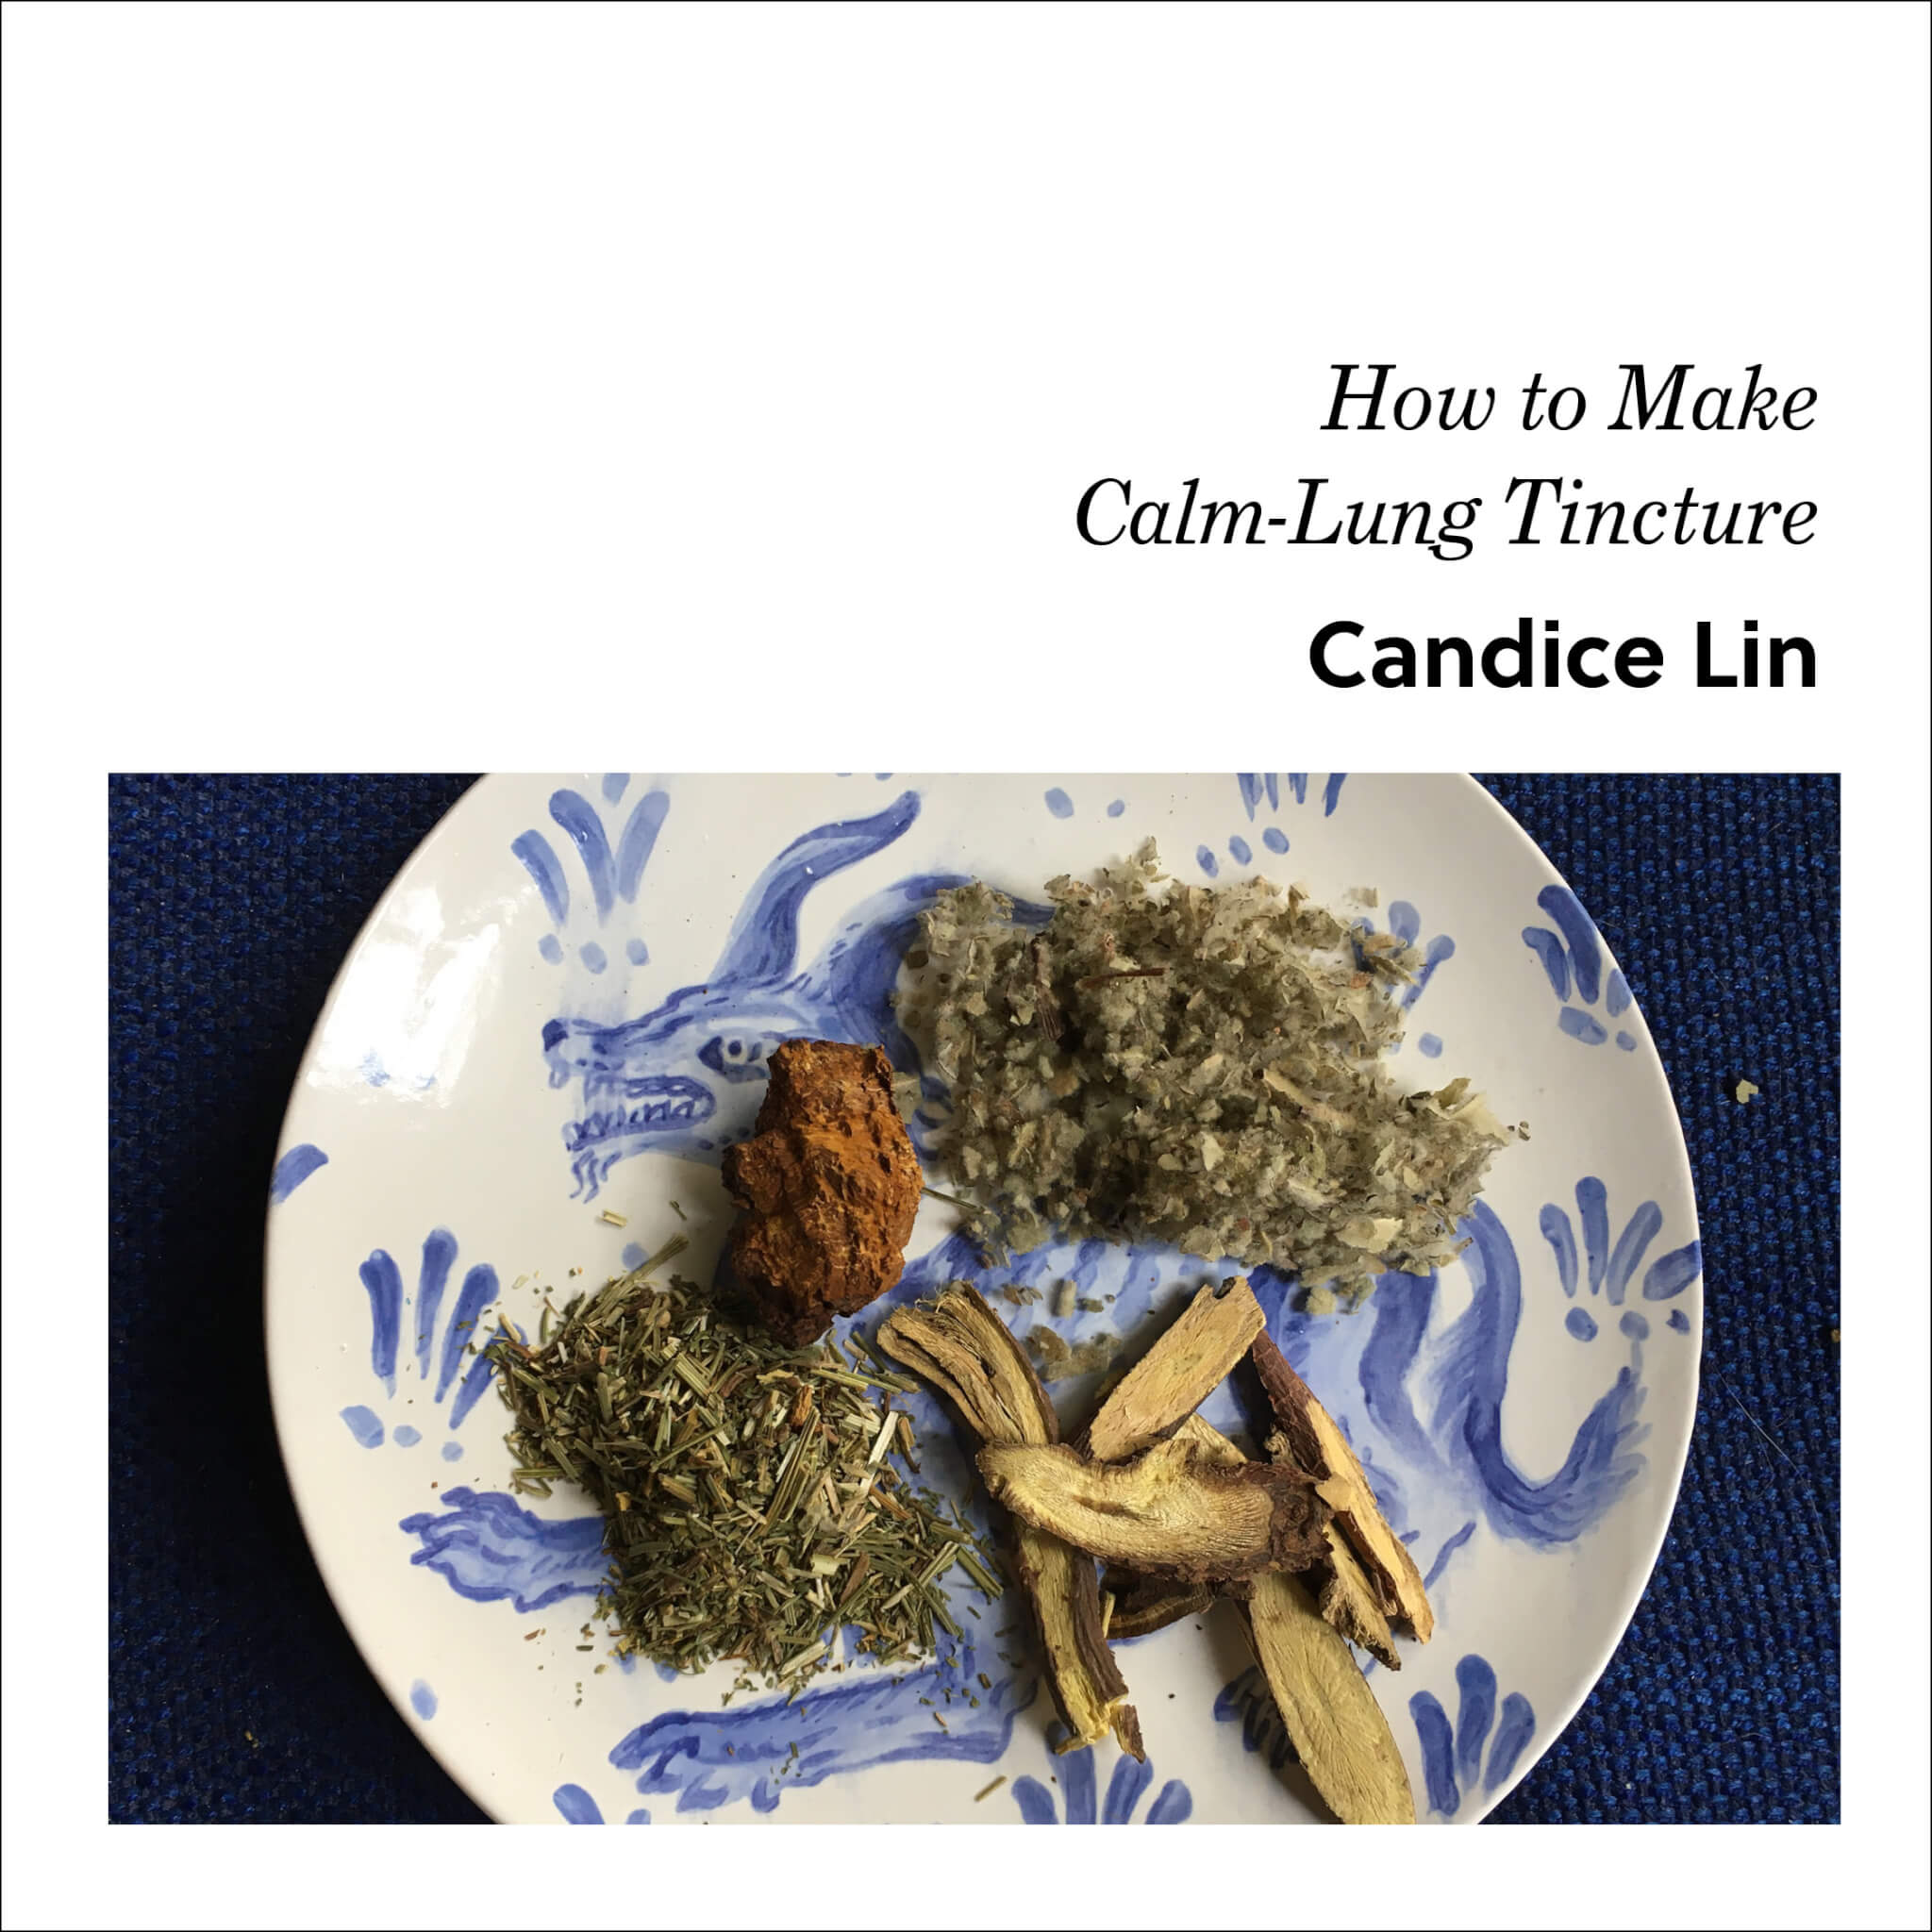 Week 1: Candice Lin